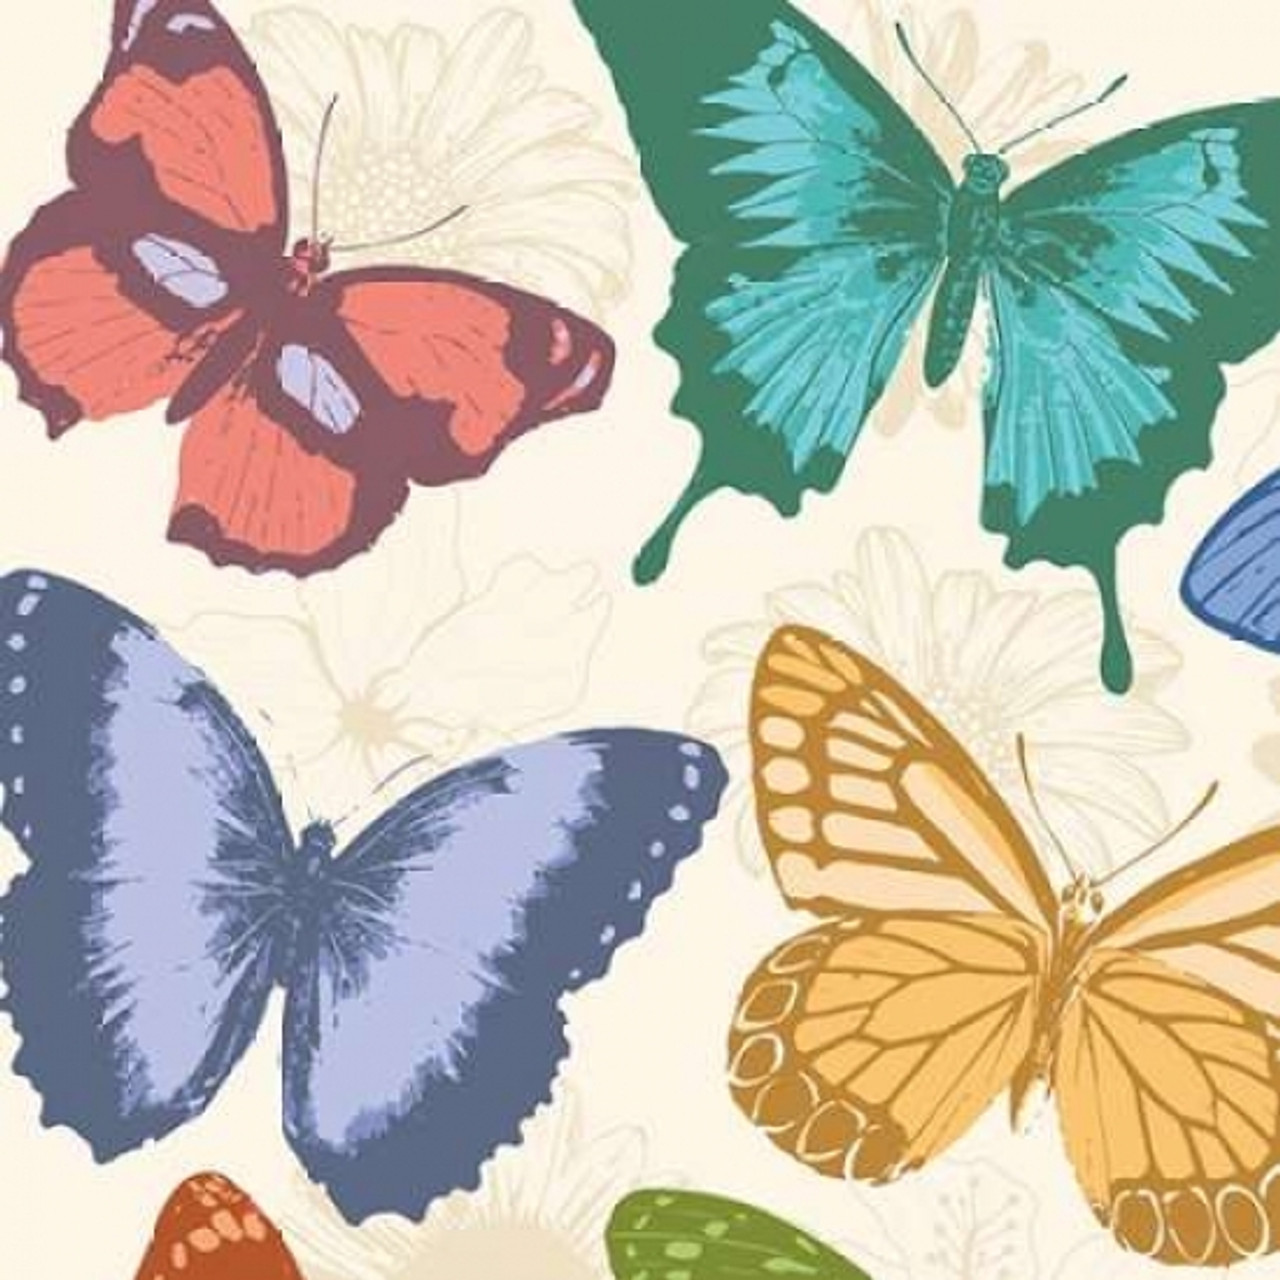 Colorful Butterflies Poster Print By Jace Grey Item